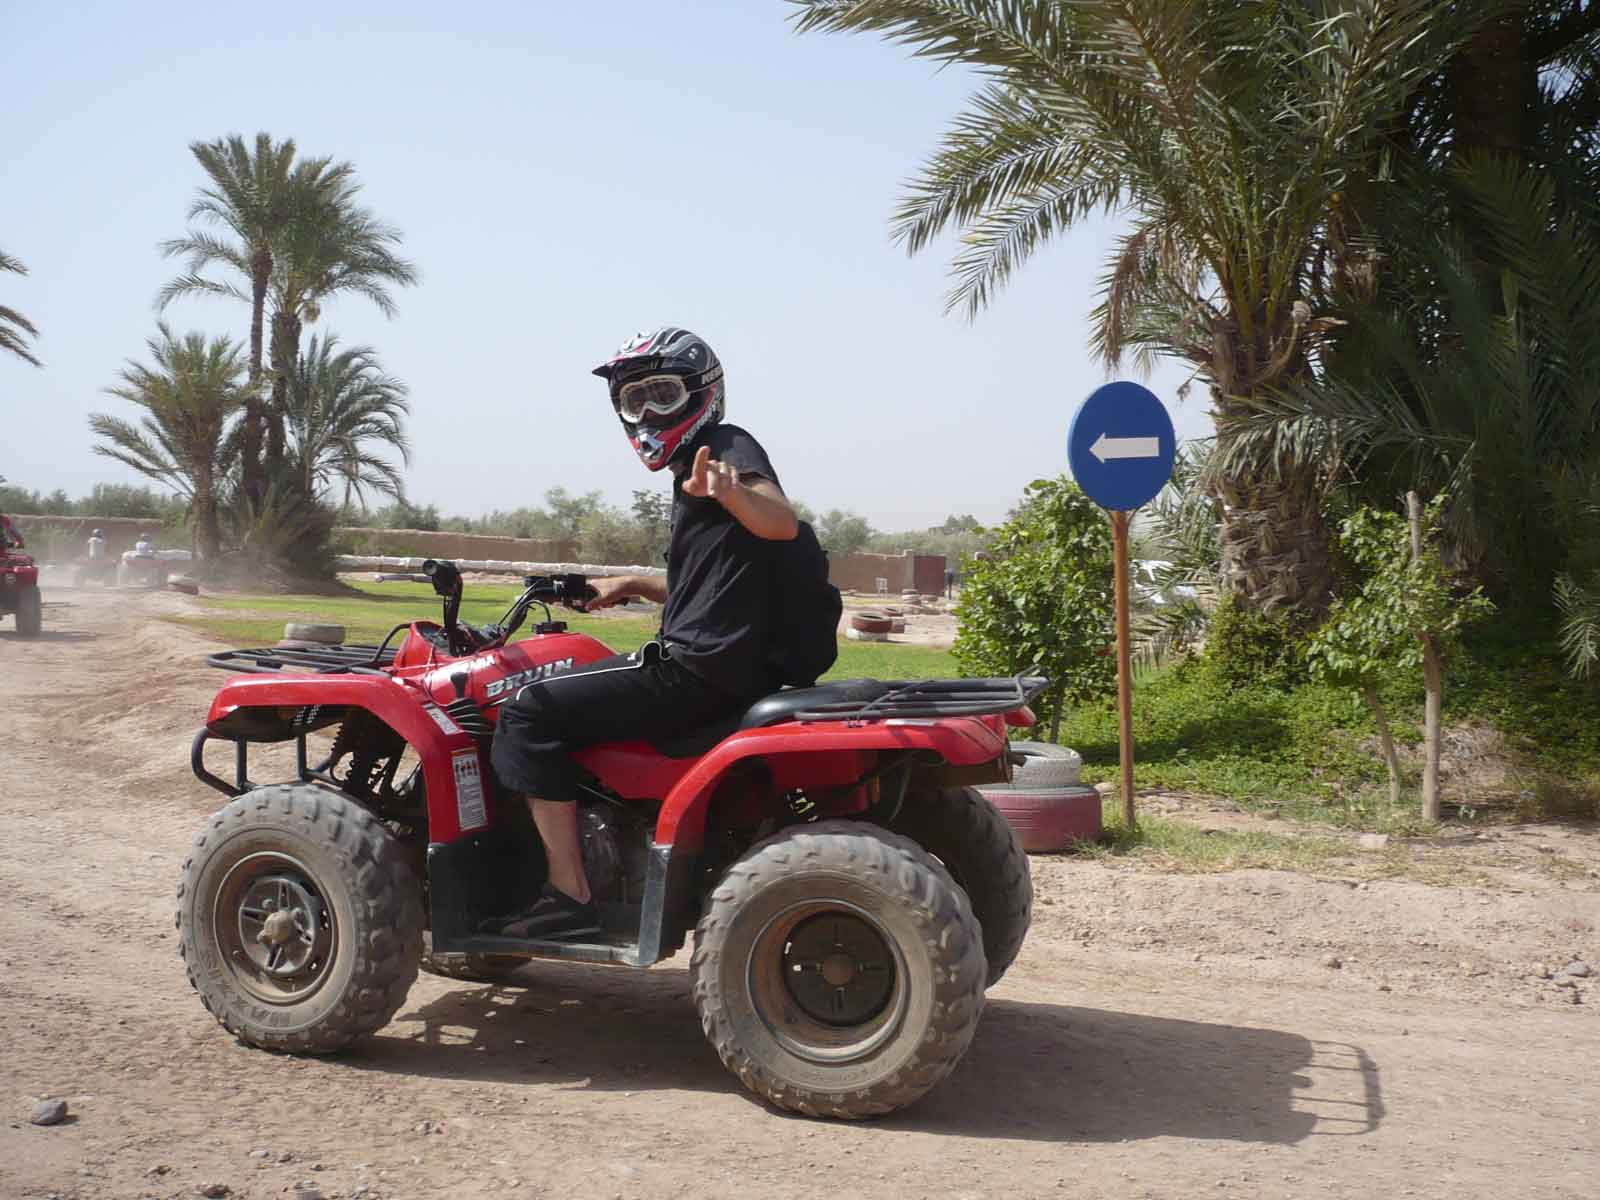 Quad bike tour Marrakech